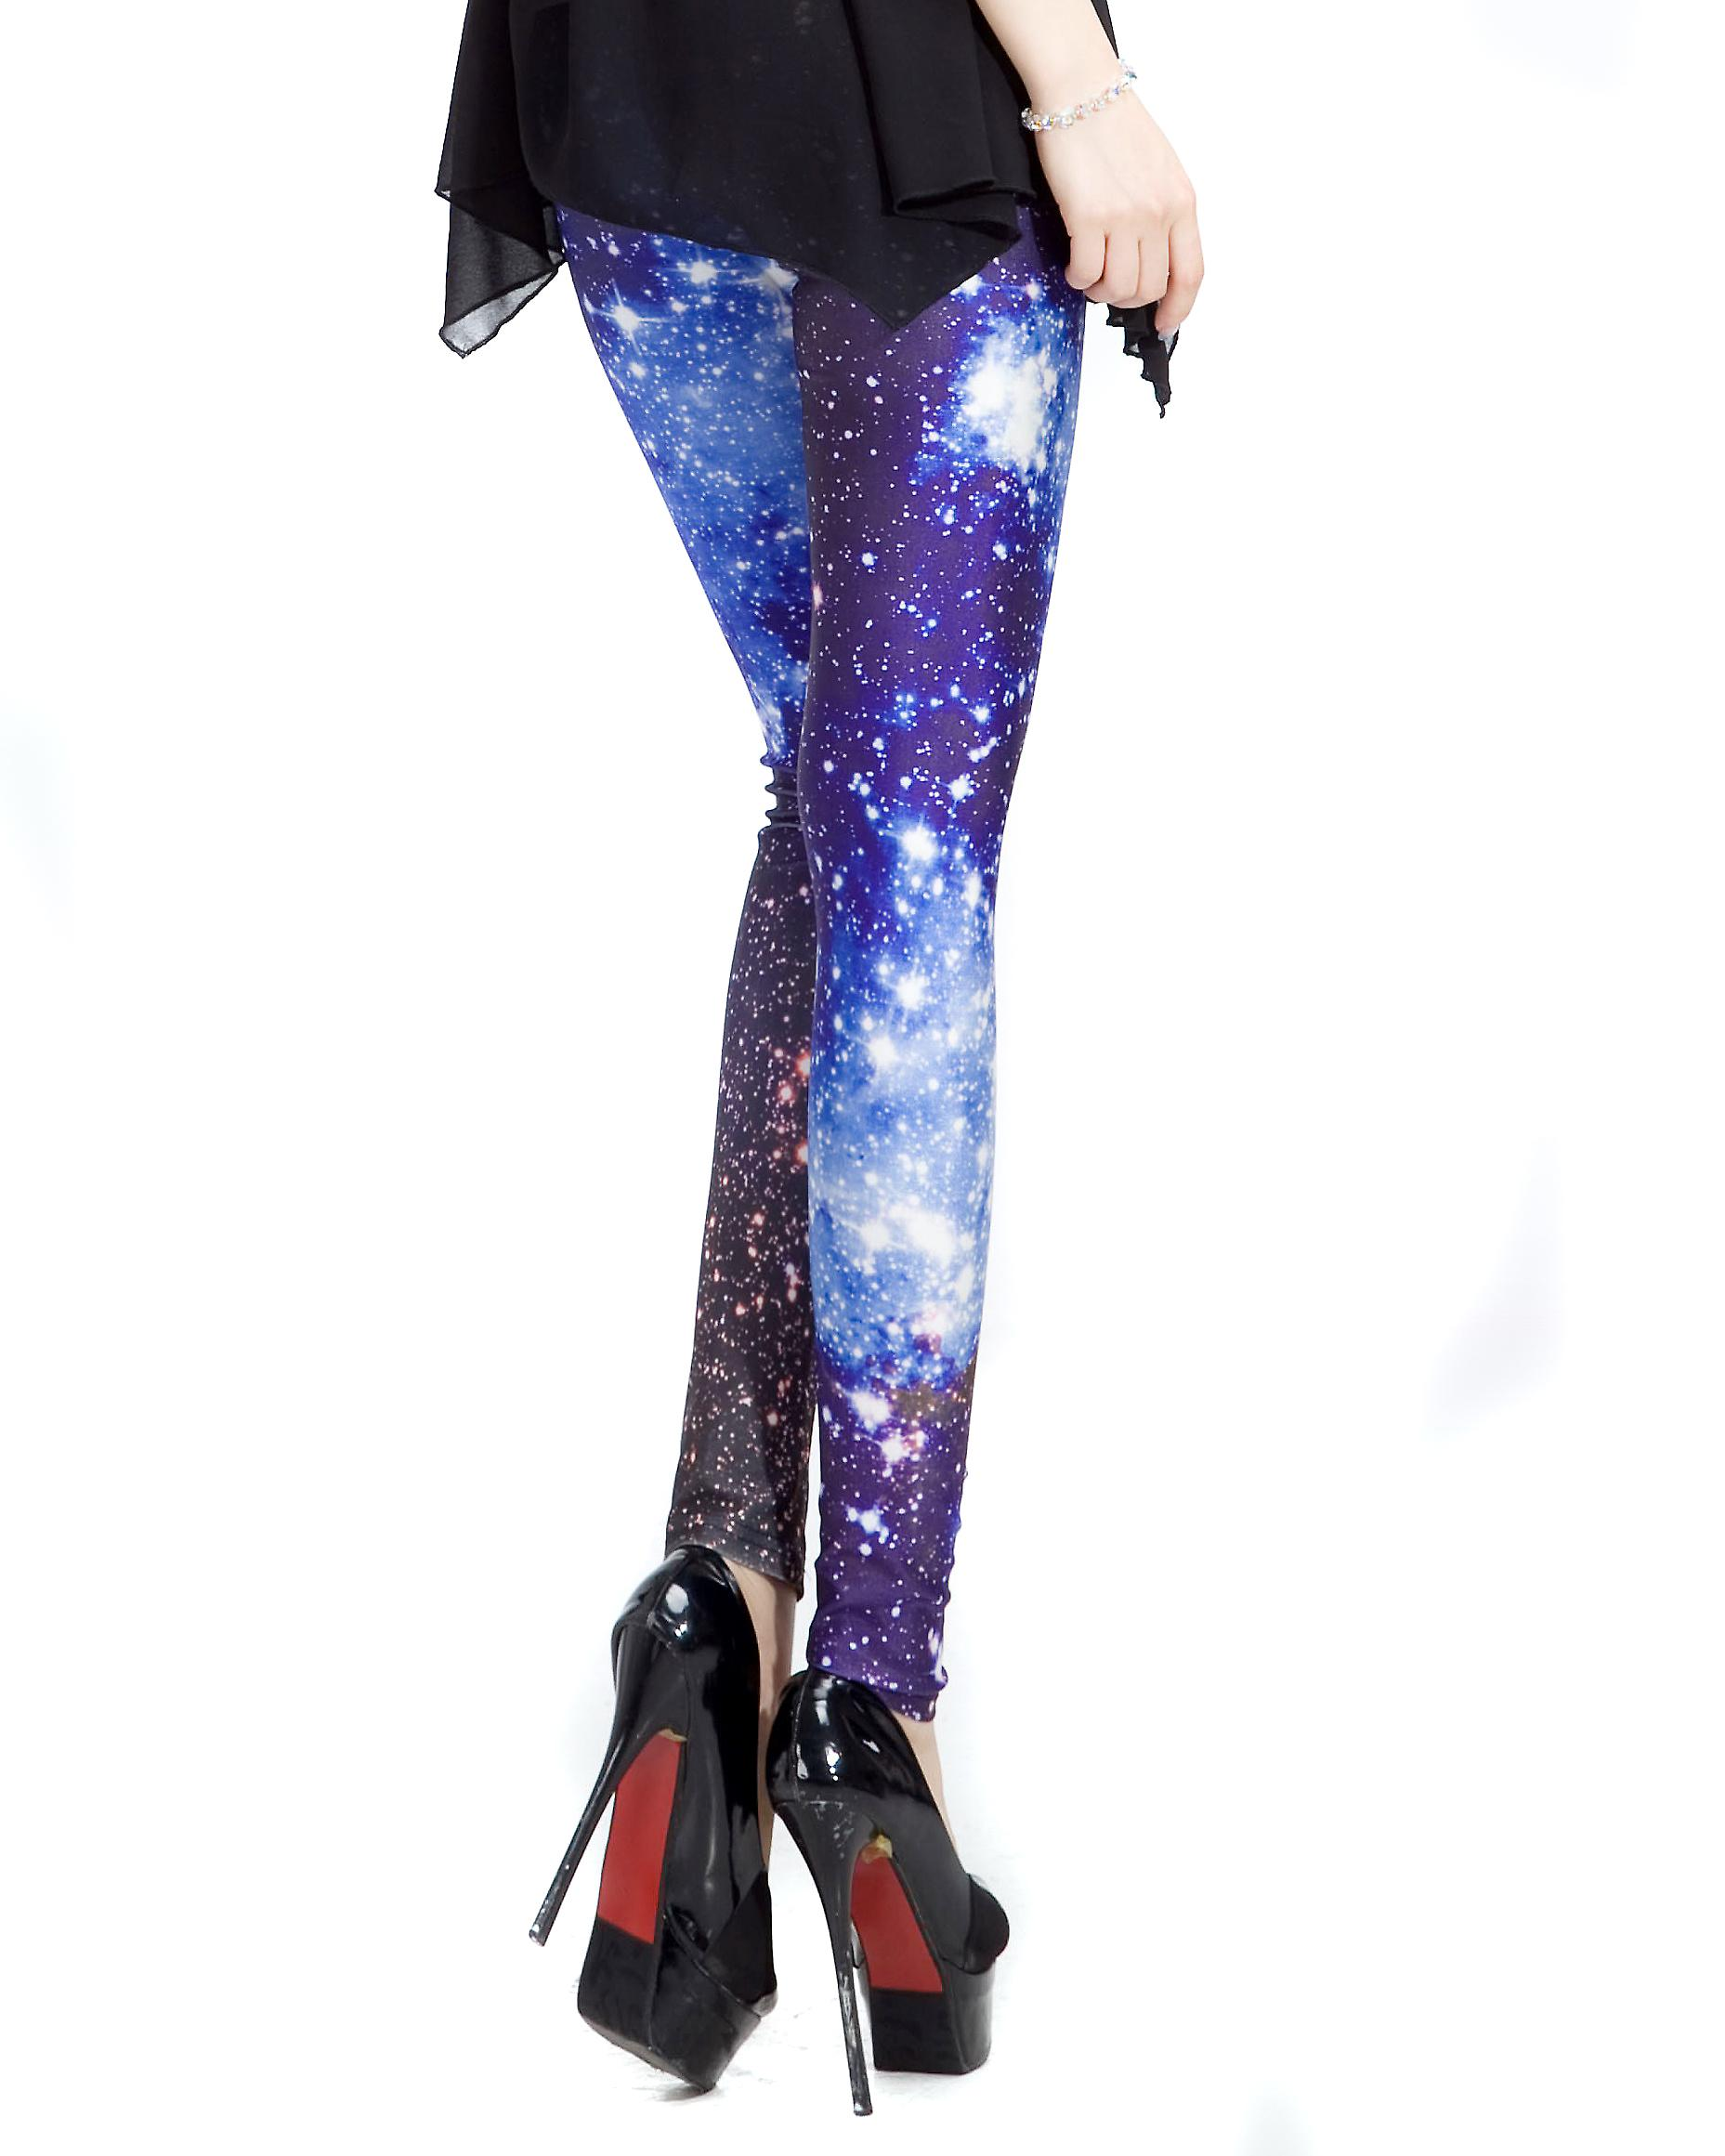 Waooh - Fashion - Leggings lang fantasy - blå galaksen